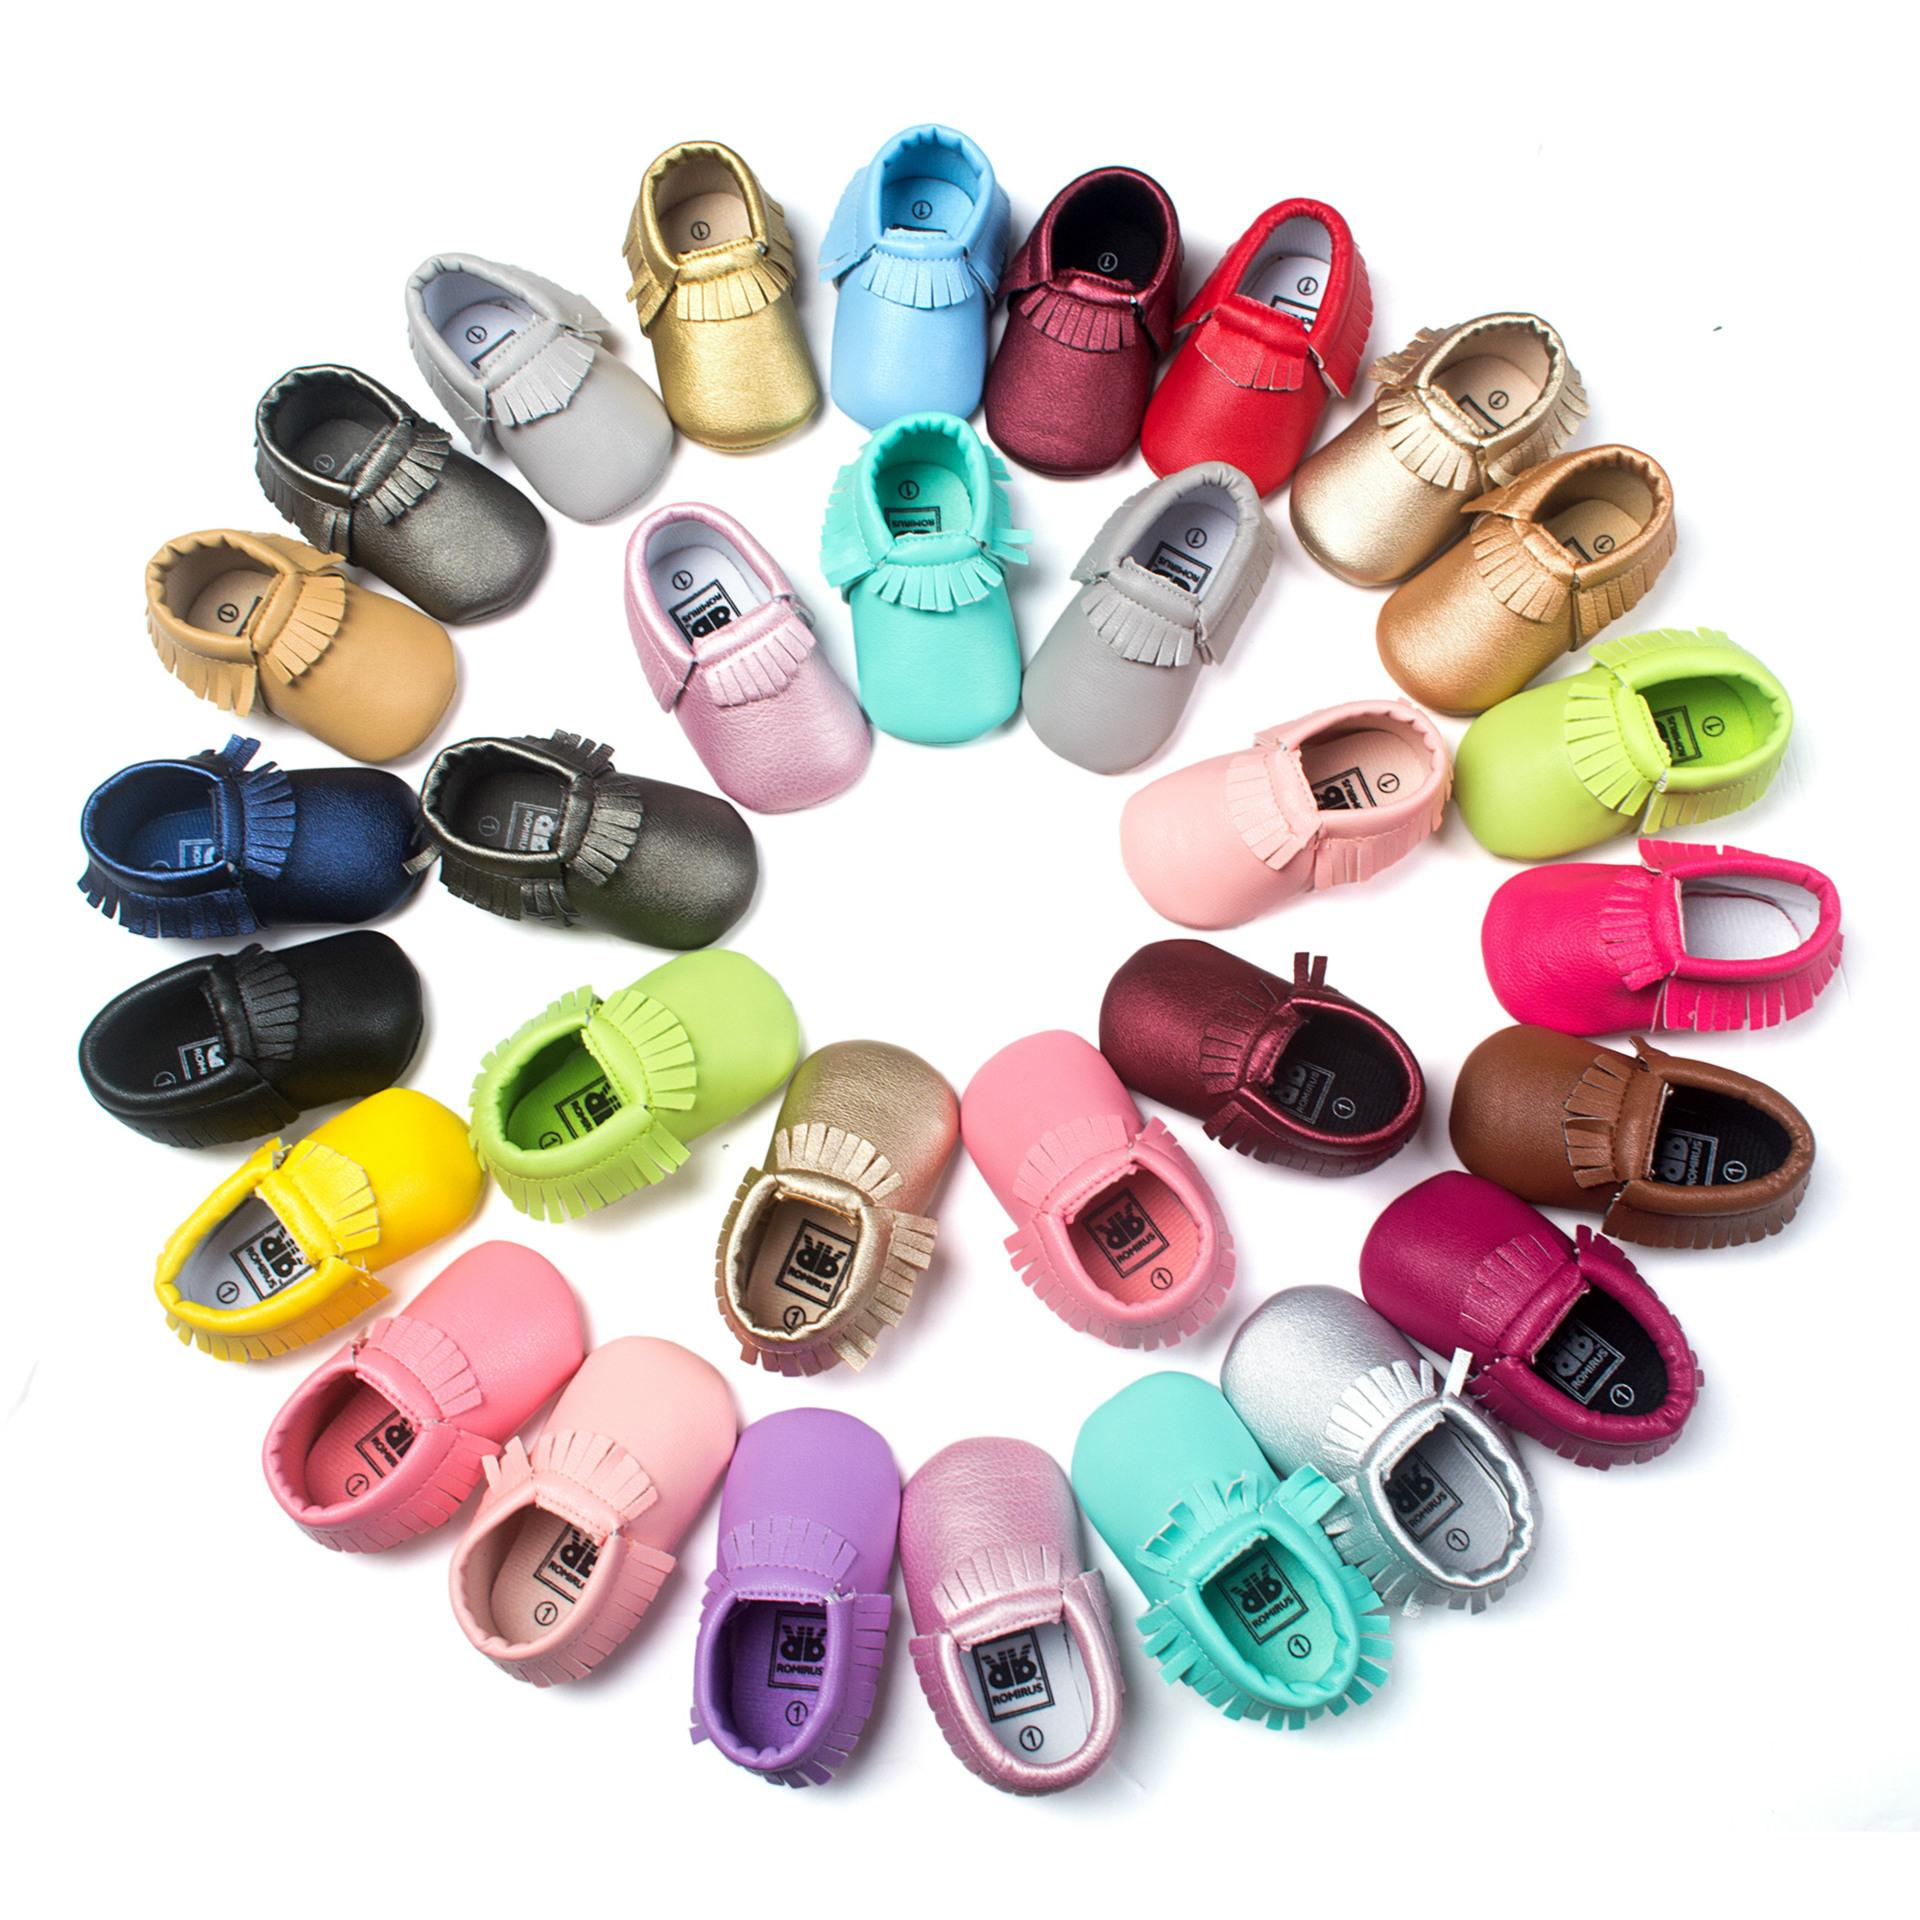 75931e4978a5b Baby Shoes Moccasin Multi-Color Soft Leather Moccs Baby Moccasins Genuine  Leather Baby Unsex Tassel Moccasin Baby Toddler Shoes Moccasin